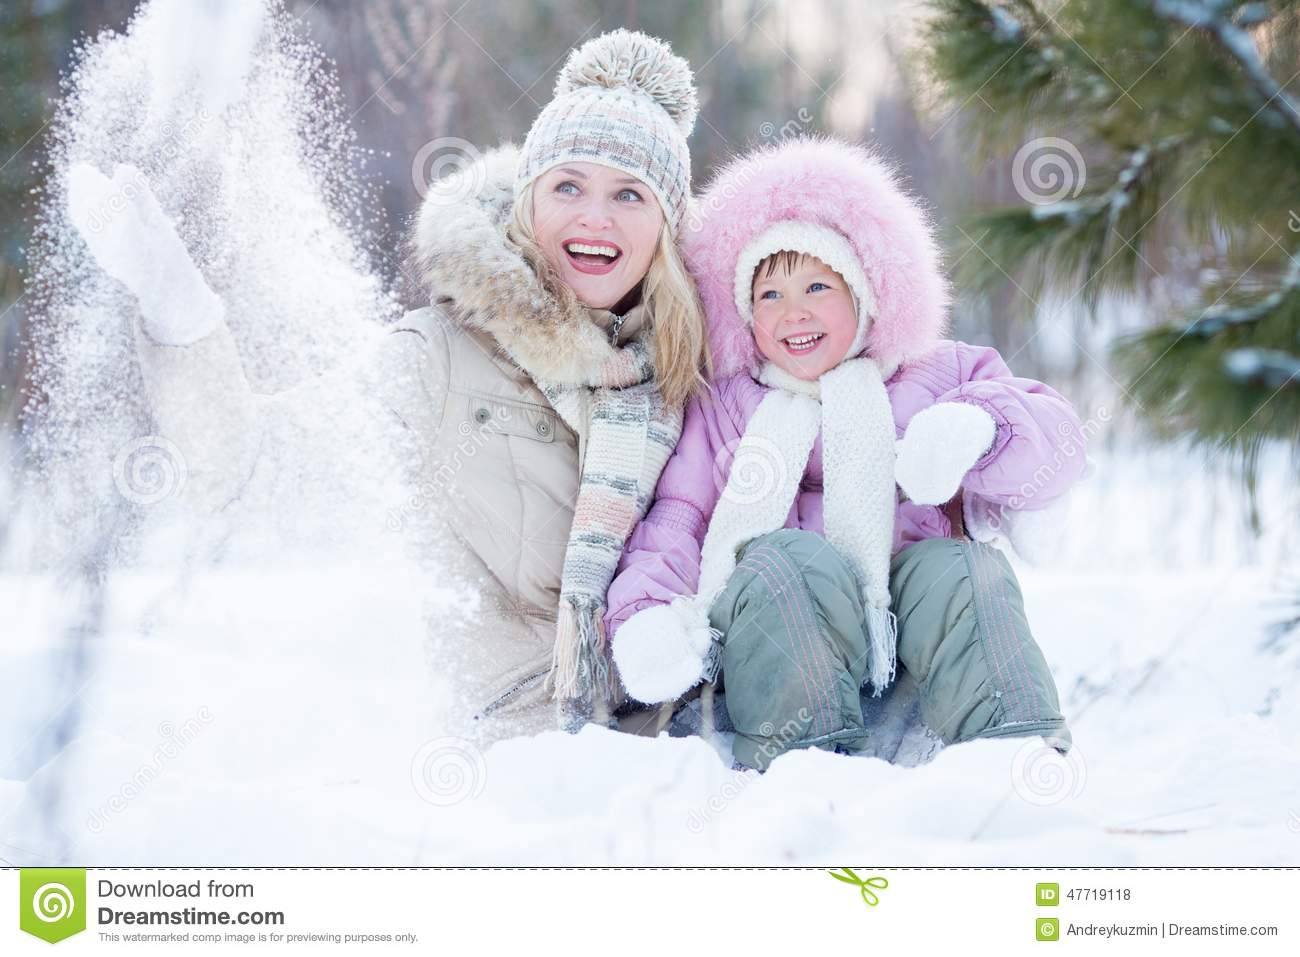 winter park single parents Parenting articles, expert tips and family fun ideas for kids of all ages use our online calendar to find great seattle activities for kids, or check out our online directory for family-friendly services in seattle, tacoma, bellevue, olympia.